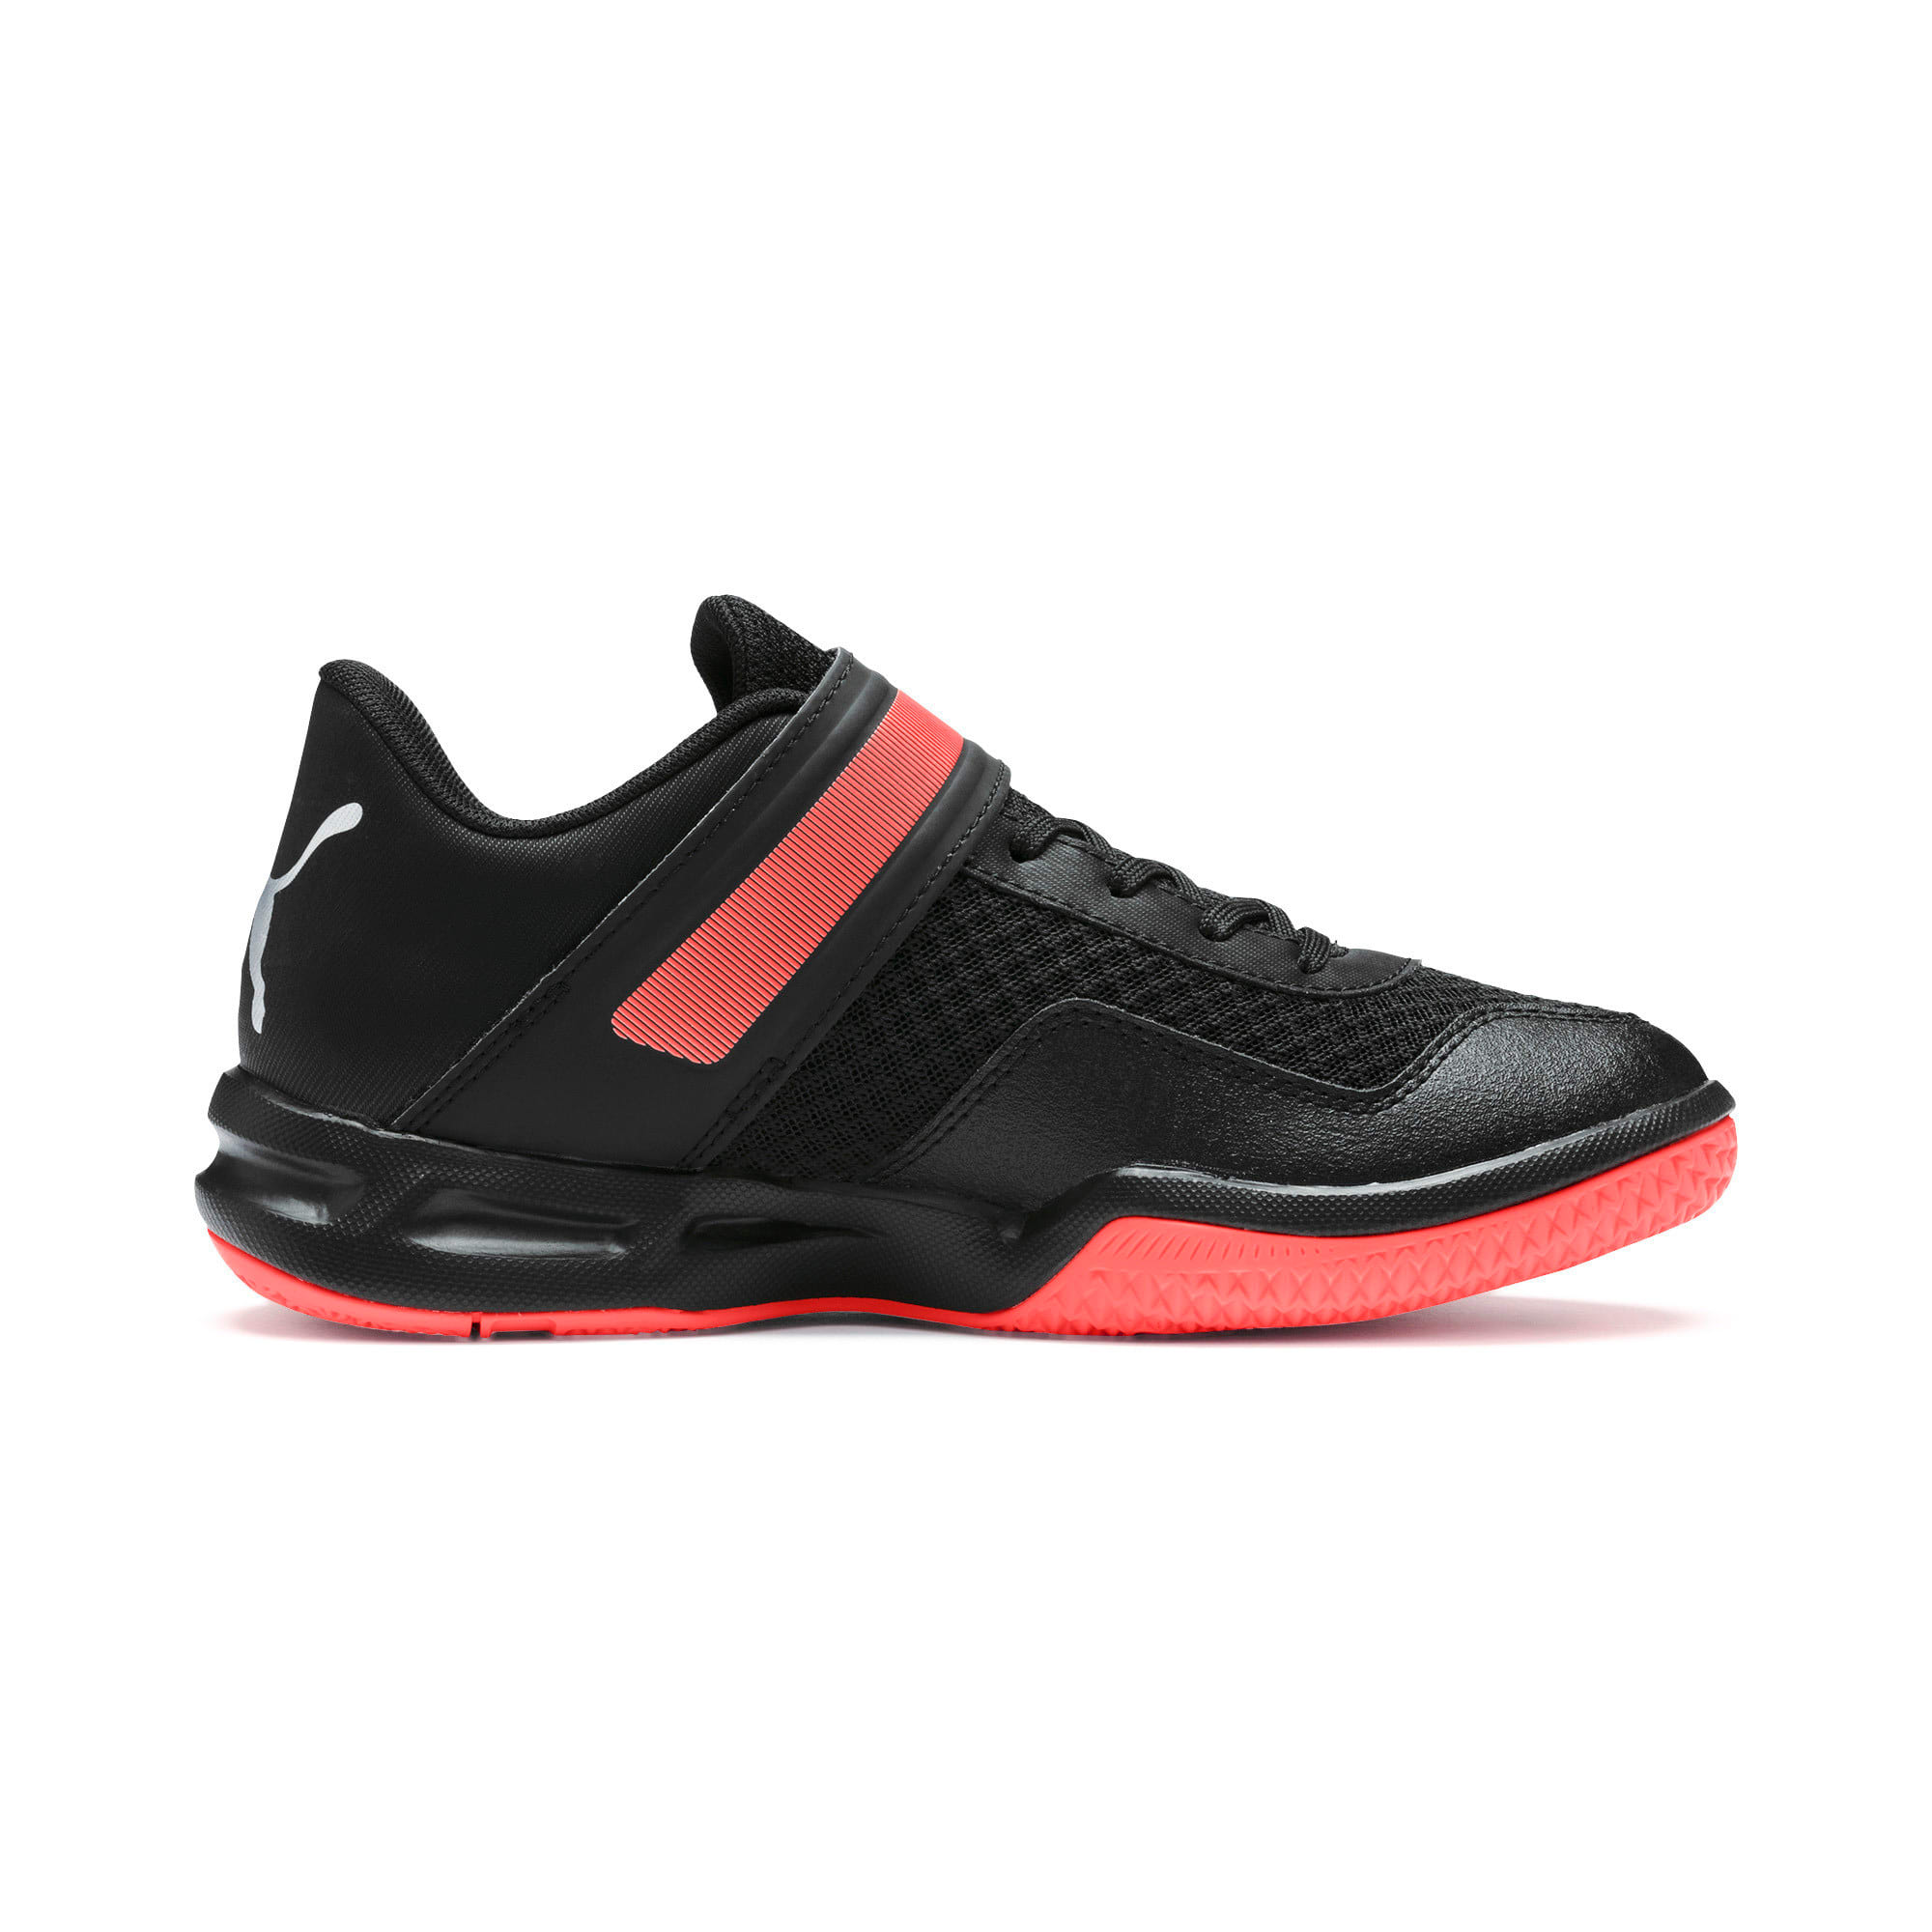 Thumbnail 5 of Rise XT 4 Youth Sneaker, Puma Black-Silver-Nrgy Red, medium